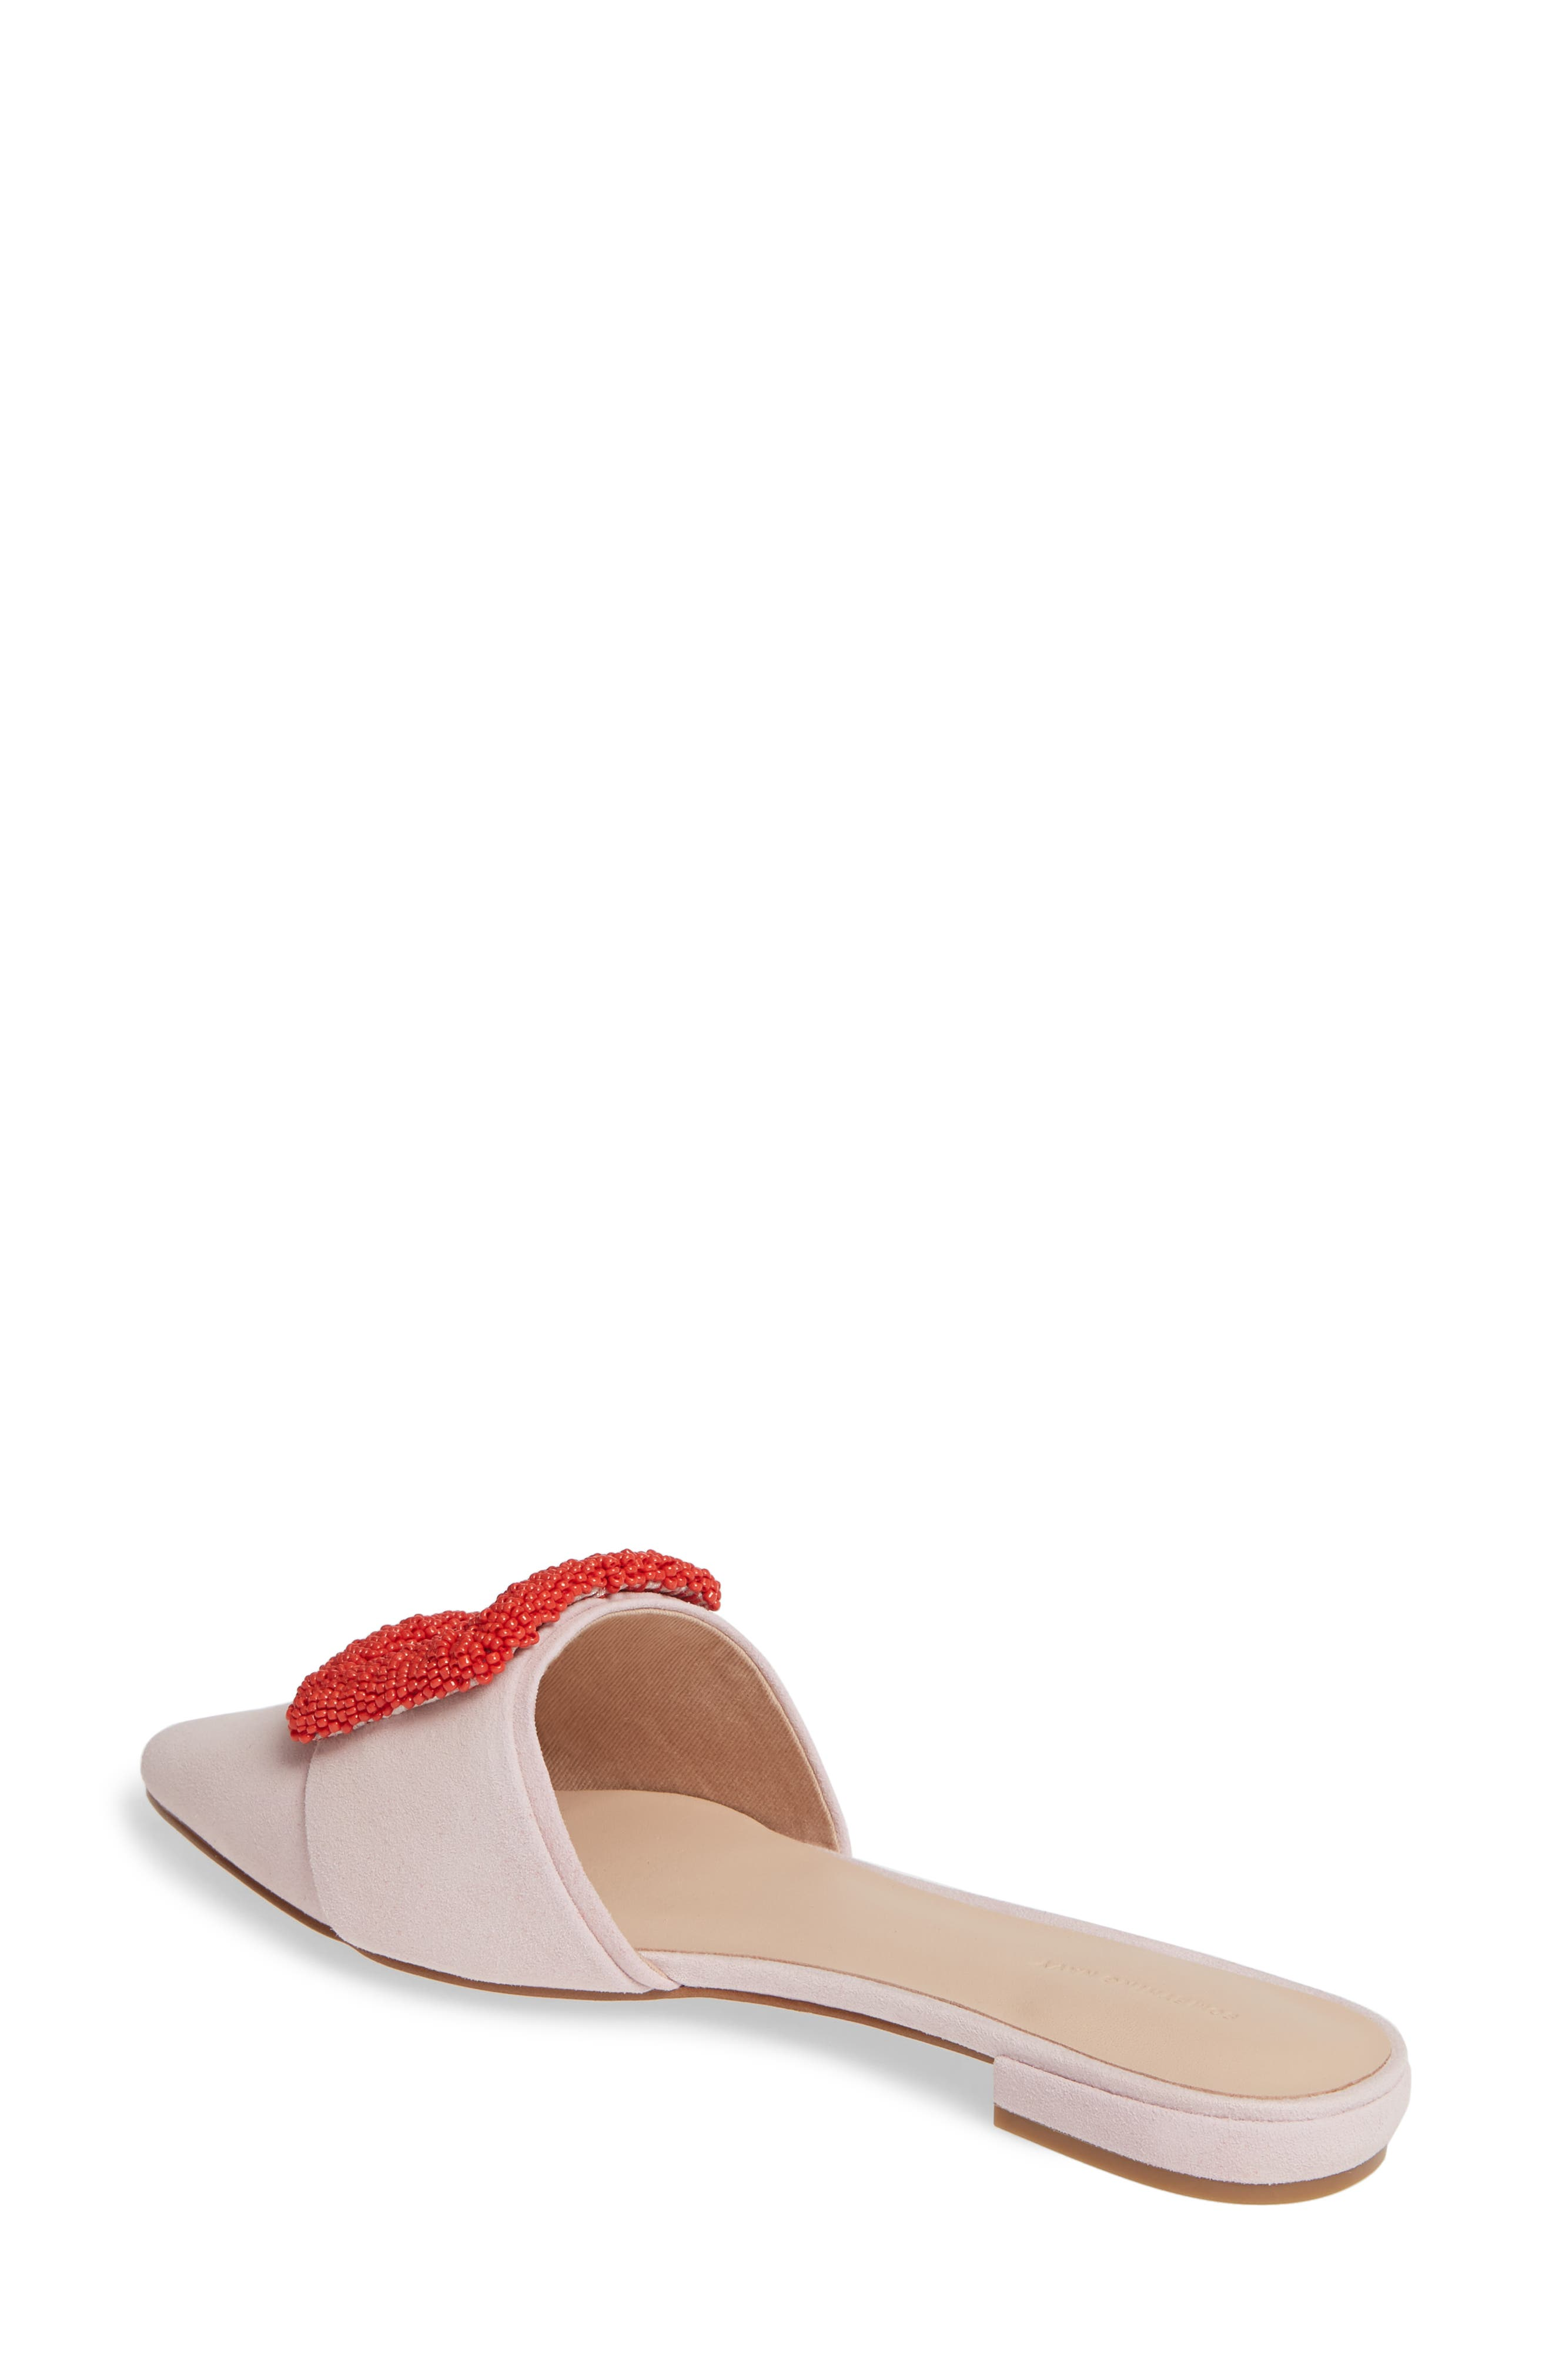 SOMETHING NAVY,                             Portia Buckle Mule,                             Alternate thumbnail 3, color,                             PINK SUEDE